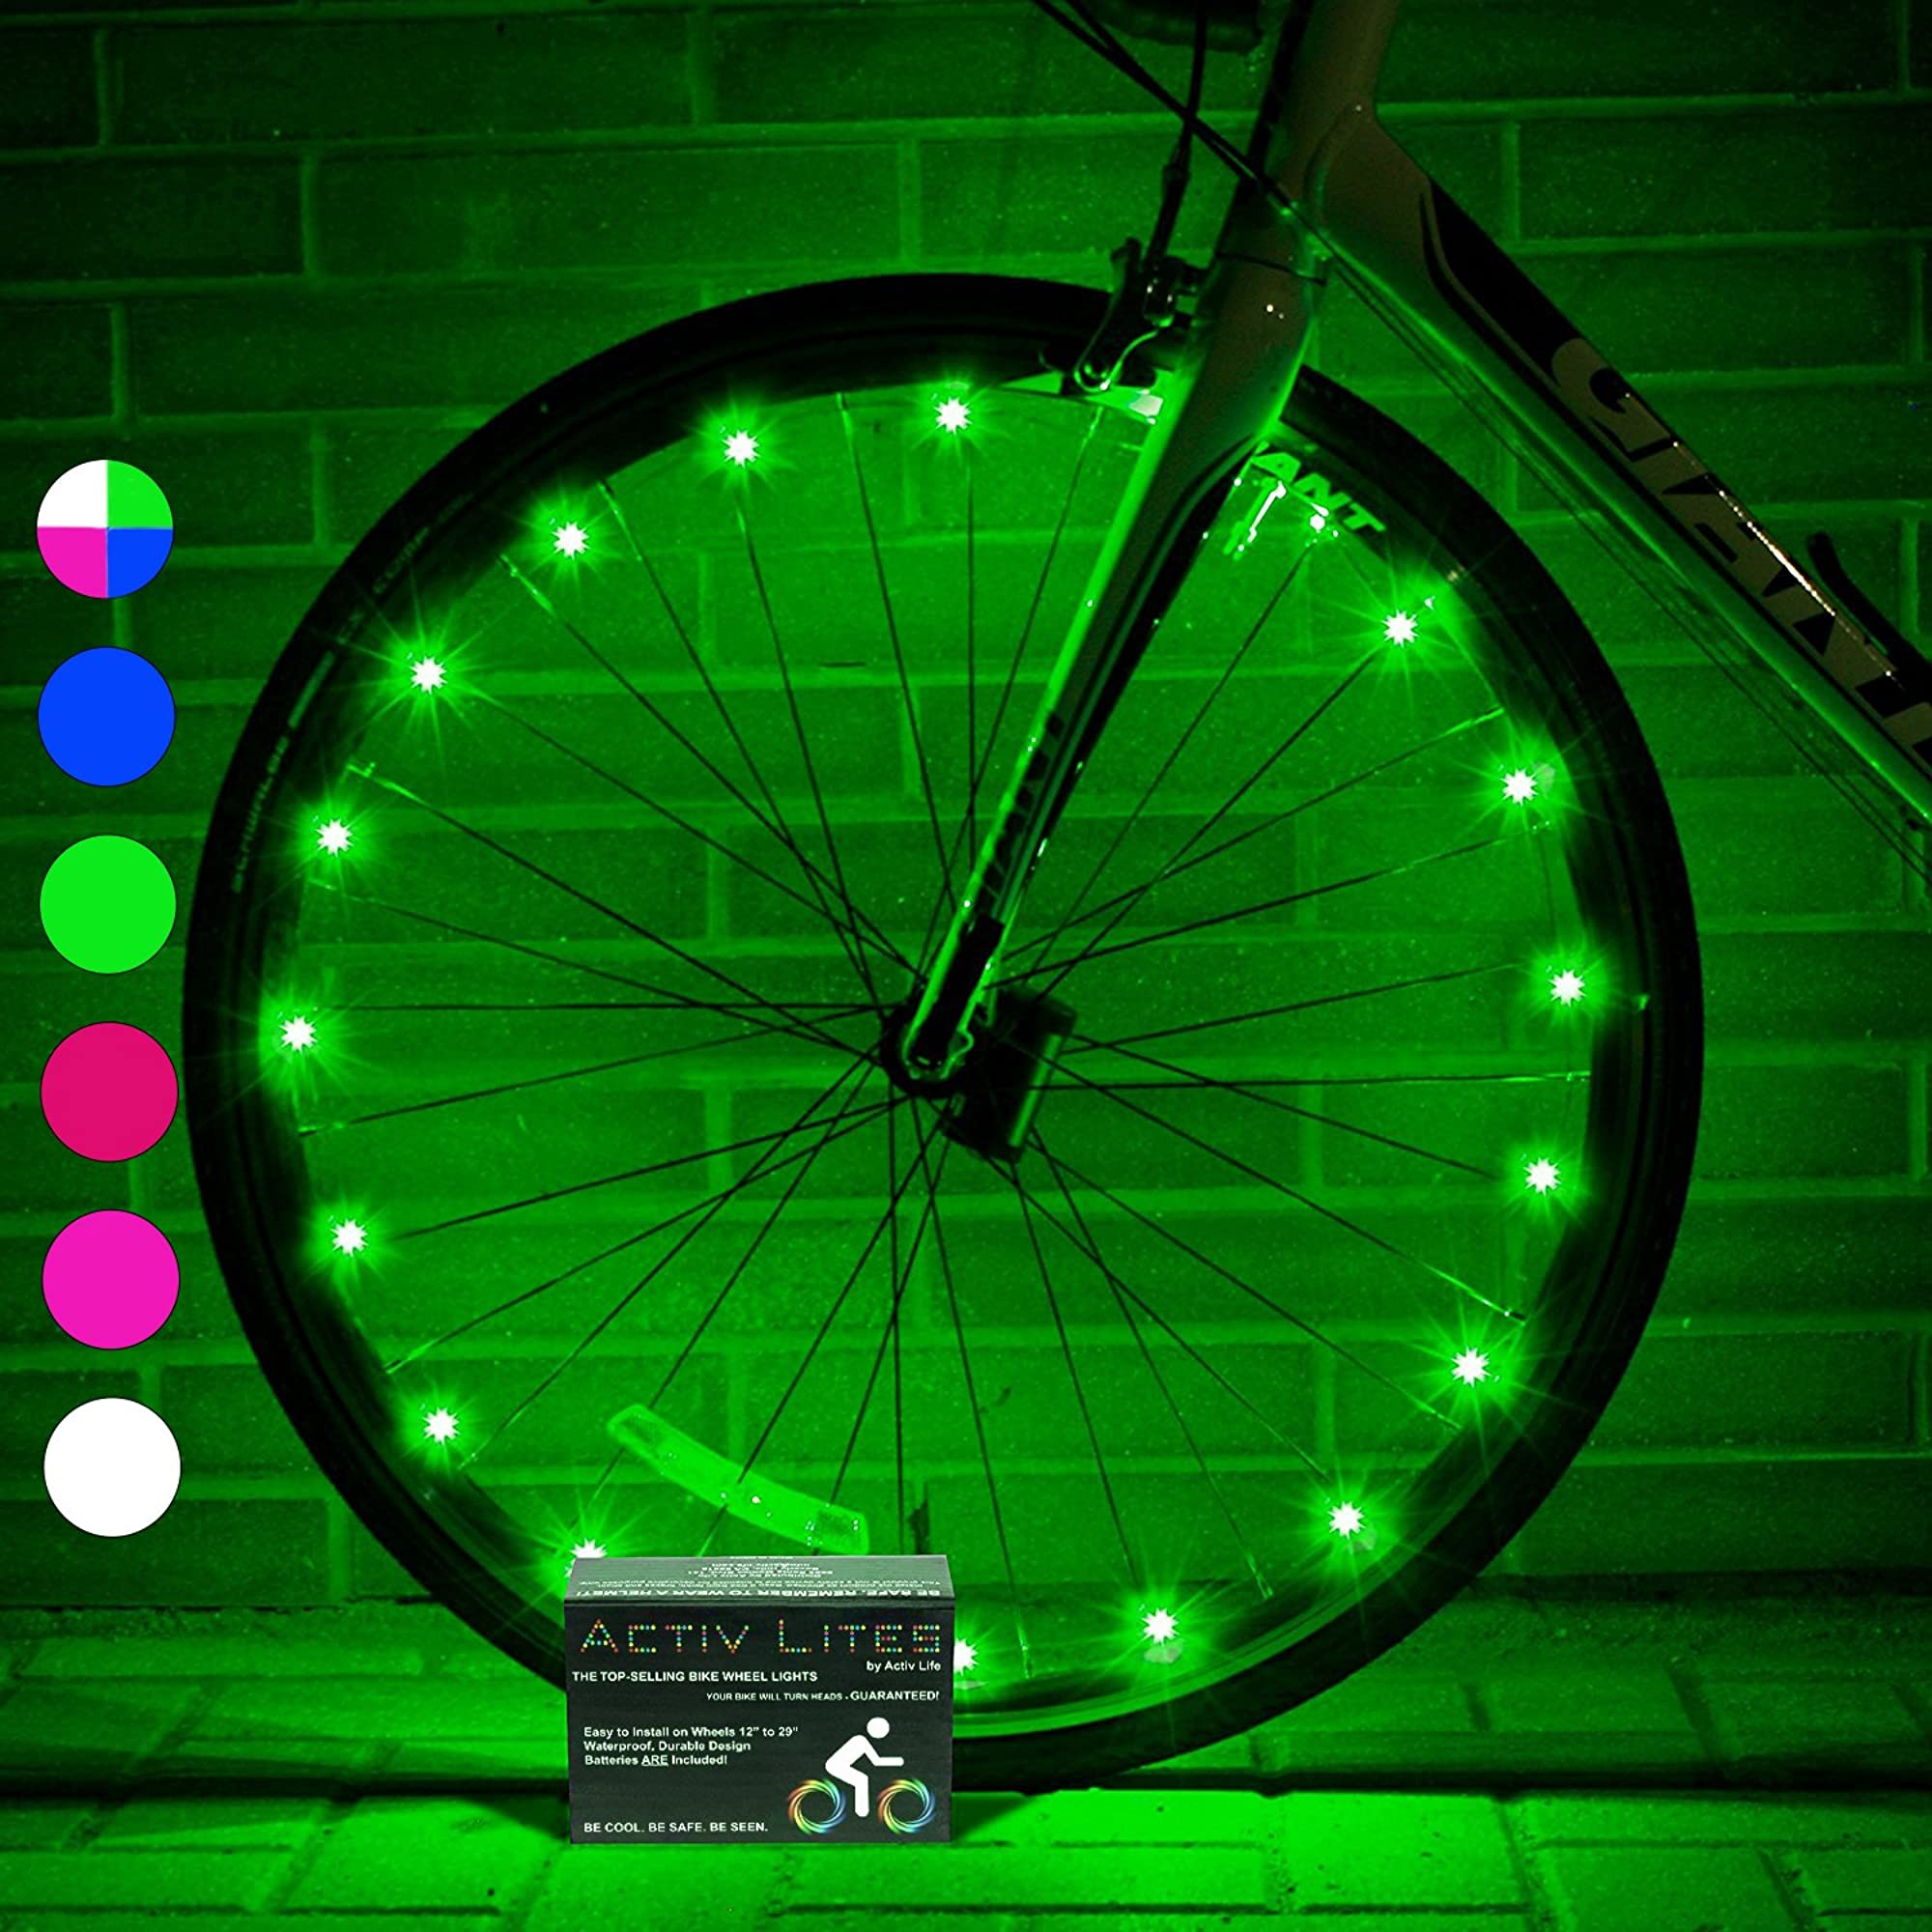 Bike Wheel Lights With Batteries Included! (1 Wheel Pack)